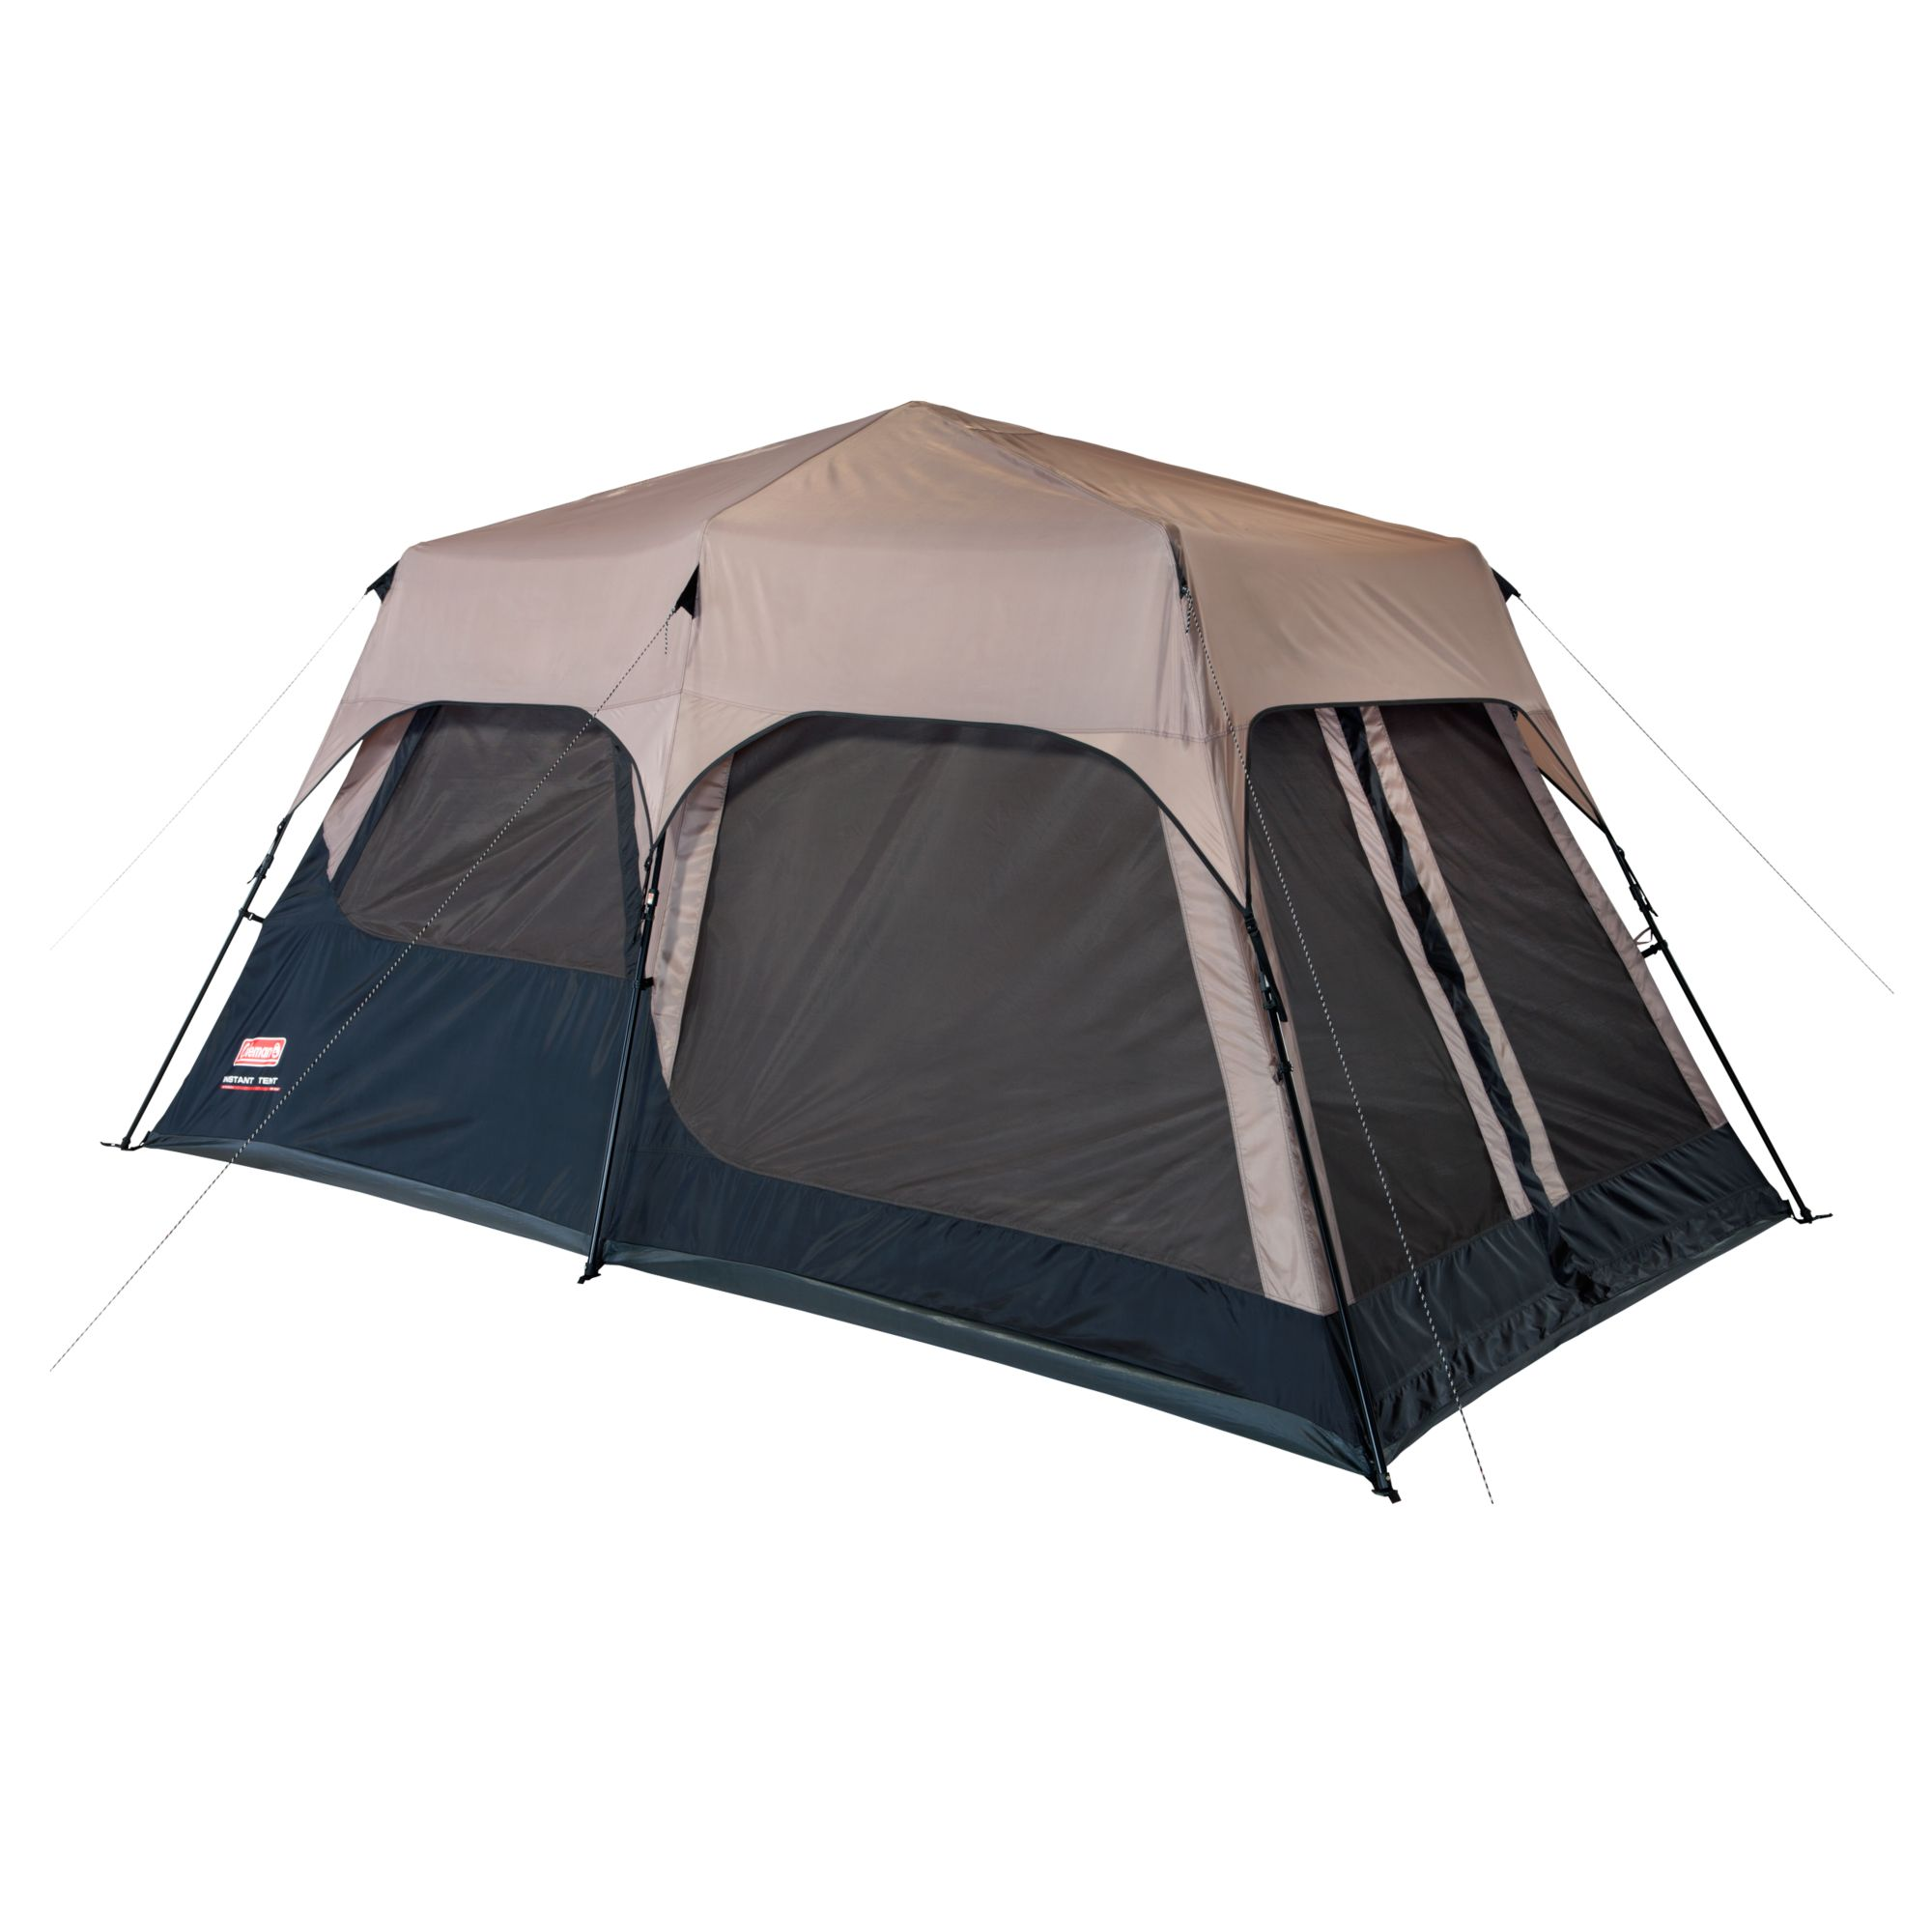 8 person instant tent rainfly accessory coleman 8 person instant tent rainfly accessory sciox Choice Image